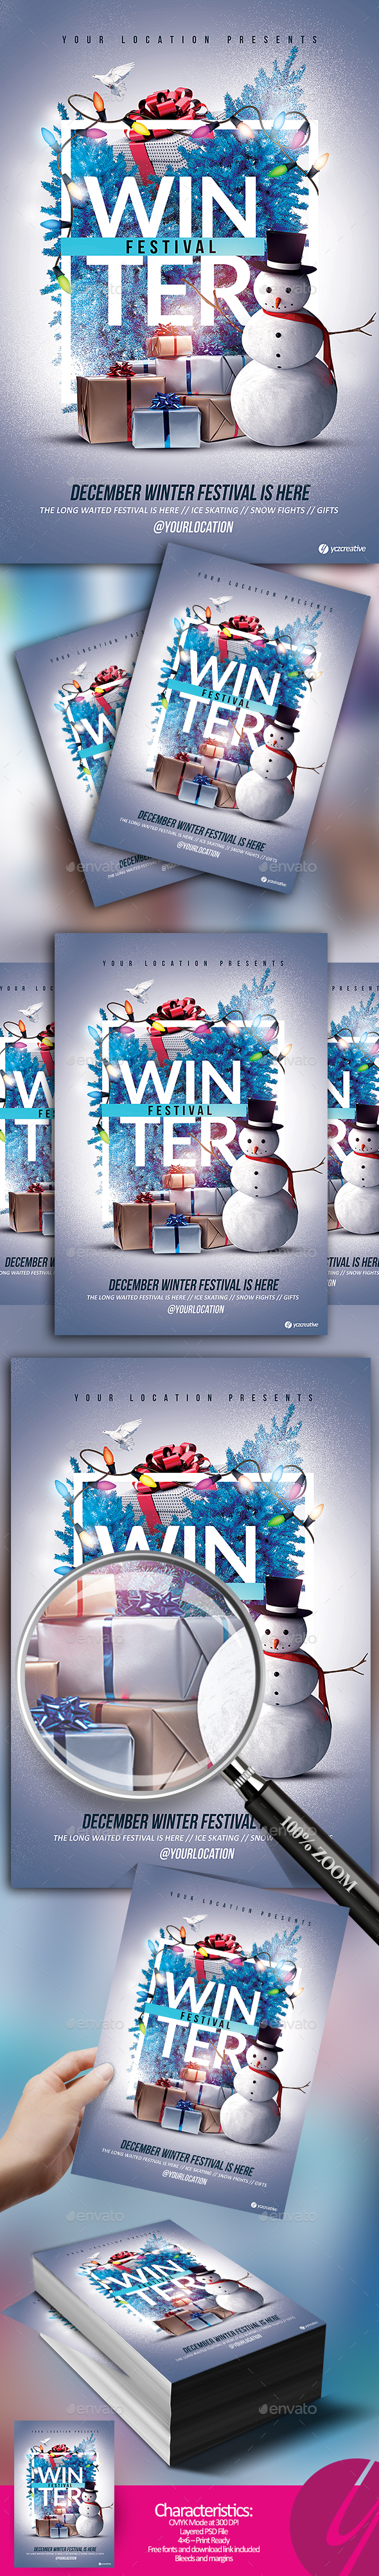 Winter is Here Festival - Holidays Events